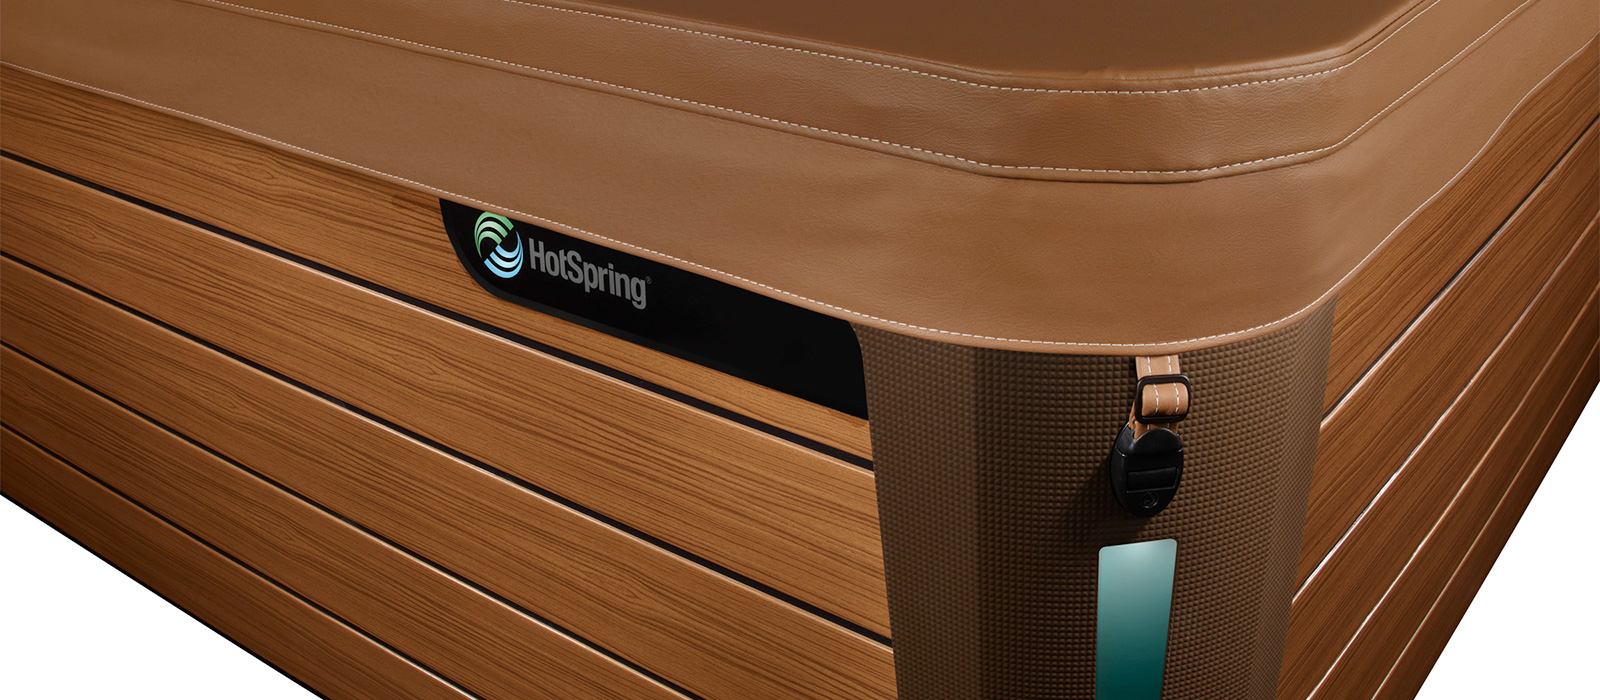 HSS_Highlife_2014_Envoy_NXT_Creme_Teak_Detail_01